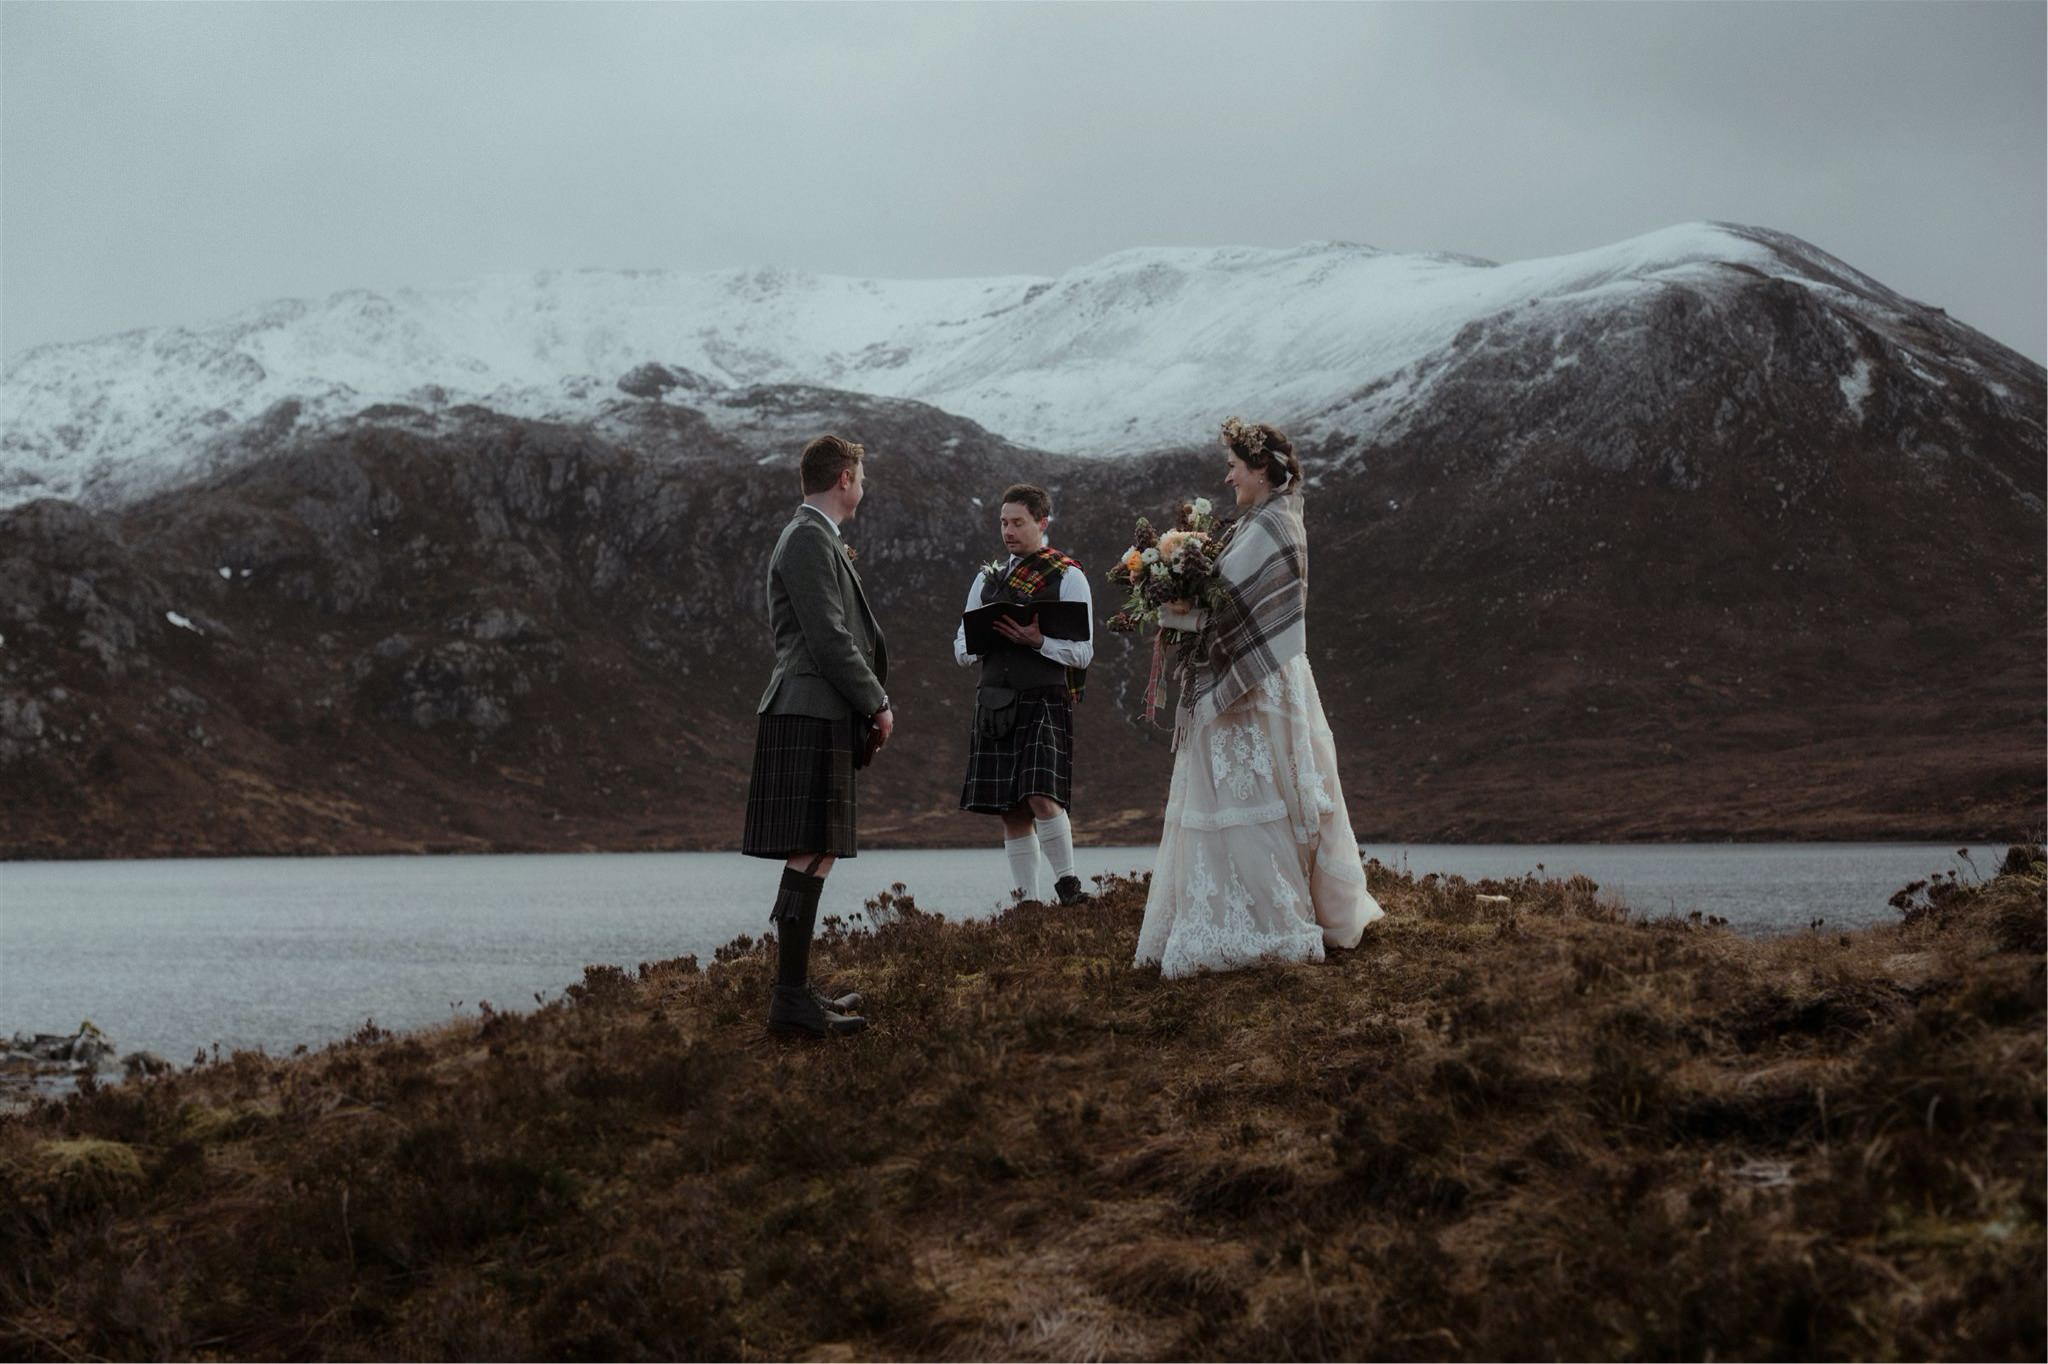 Scotland elopement wedding ceremony taking place by a loch and mountains in Assynt